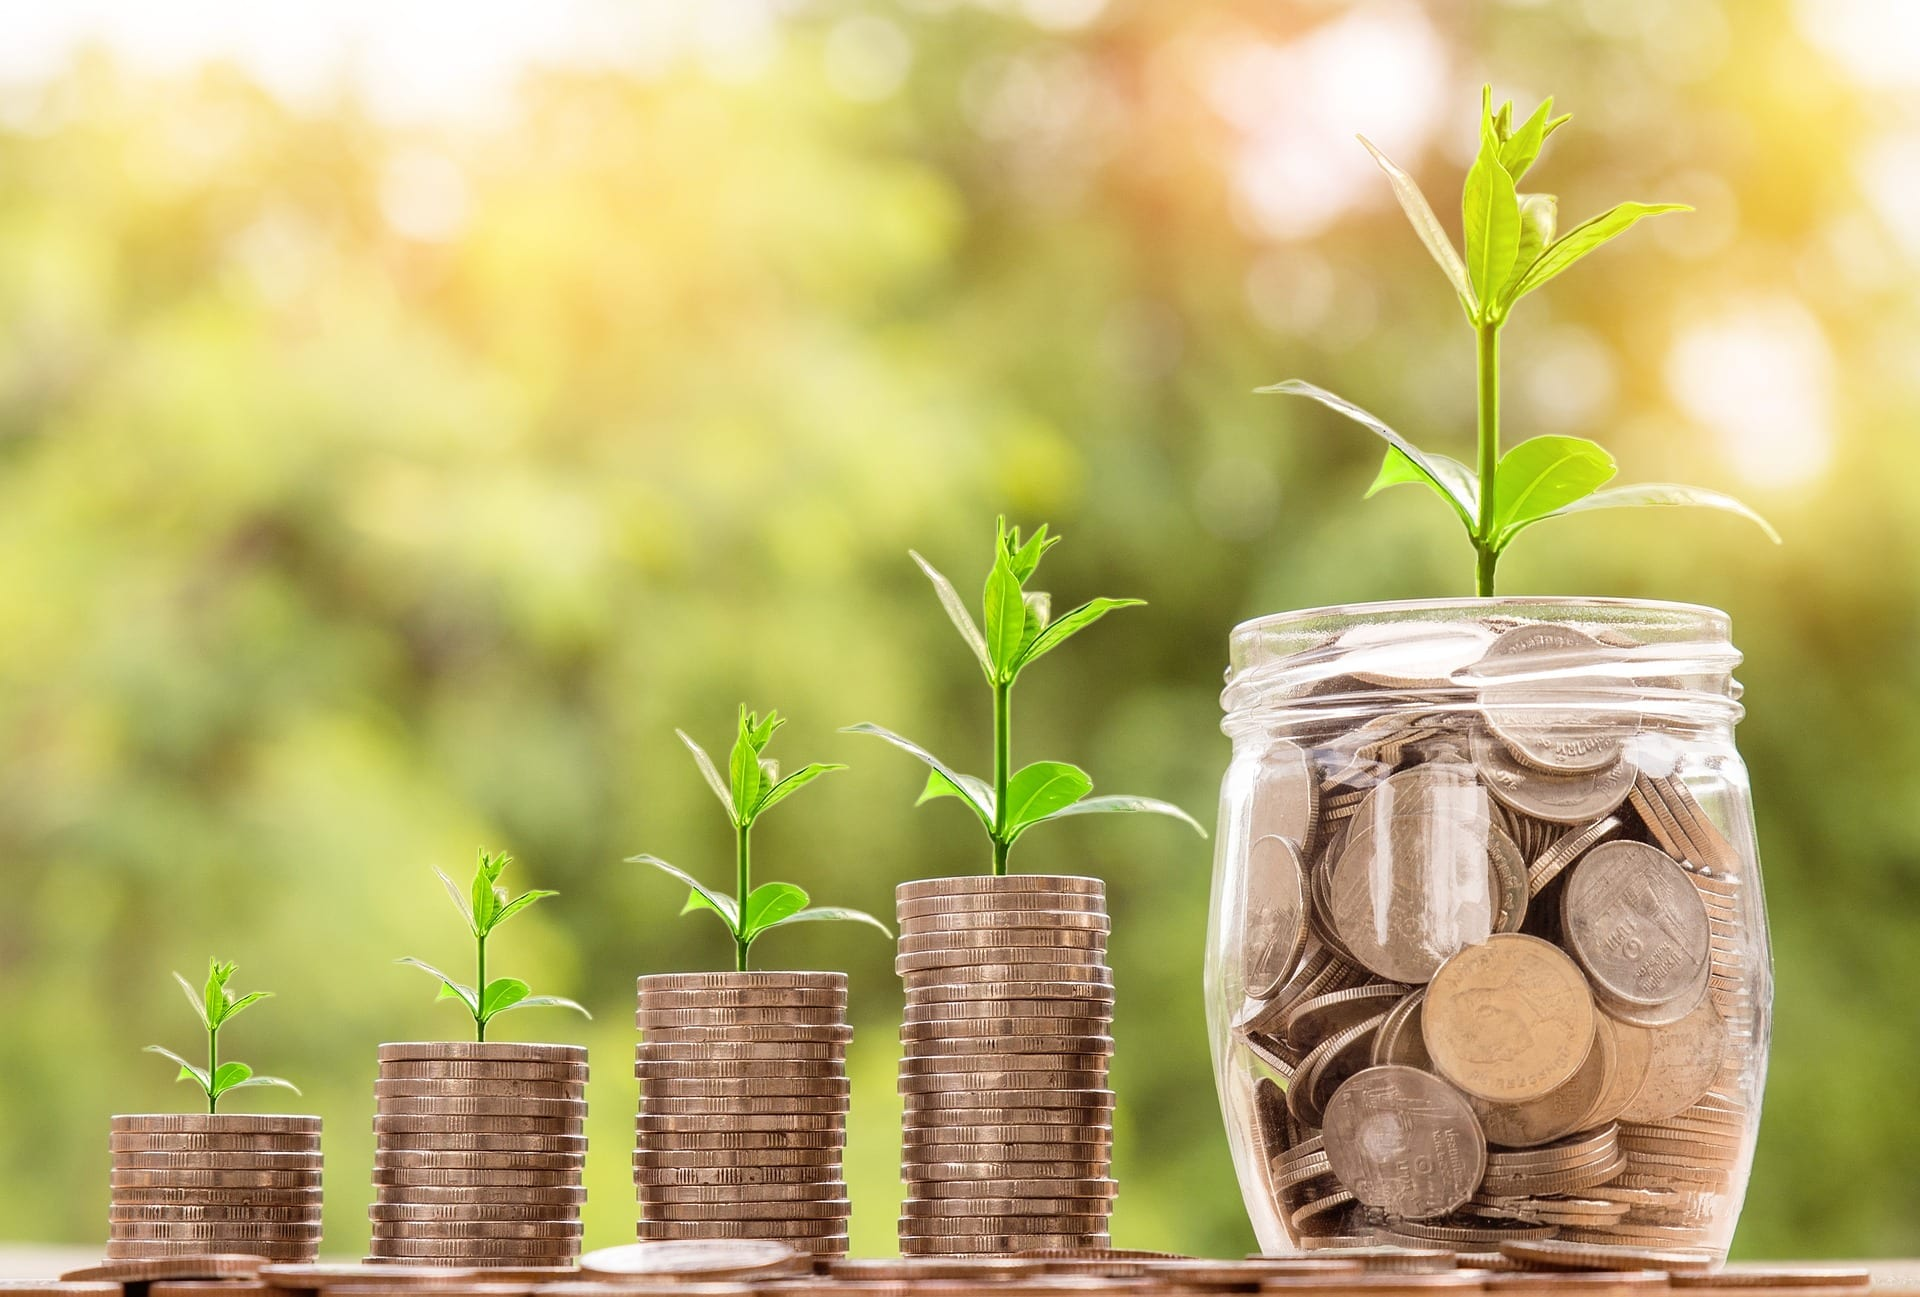 5 Tips for Business Growth